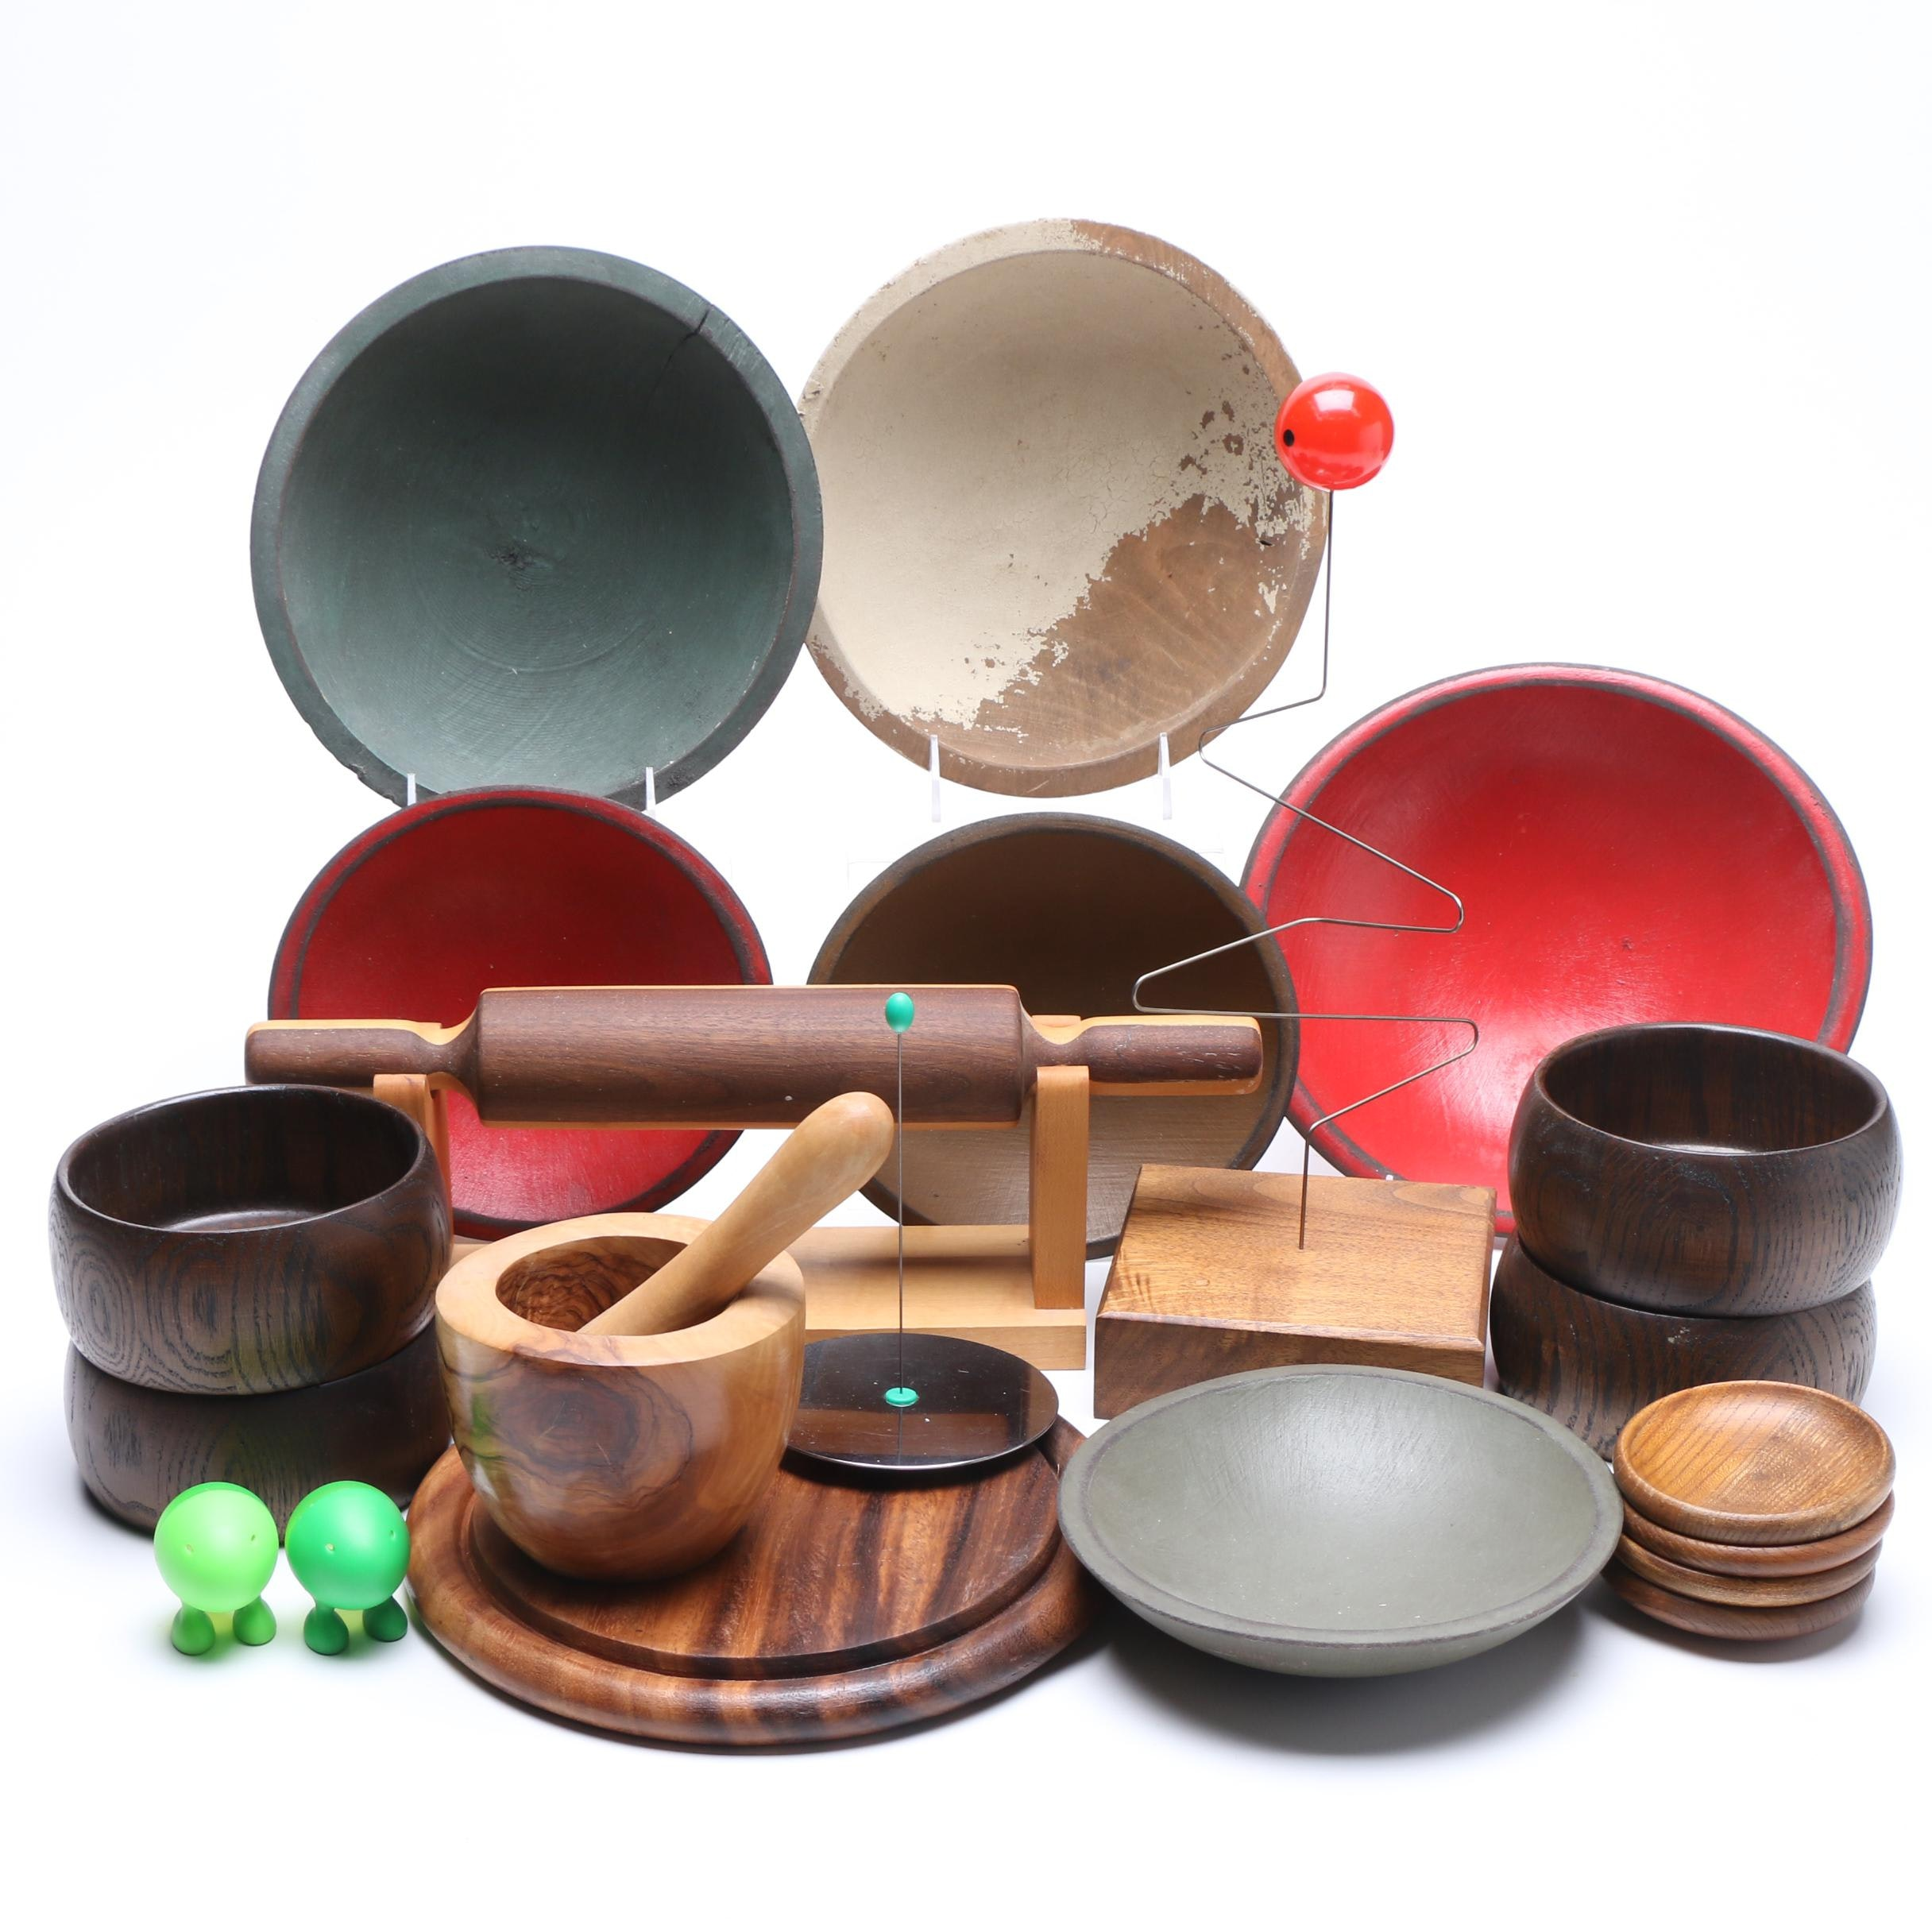 Collection of Wooden Tableware and More